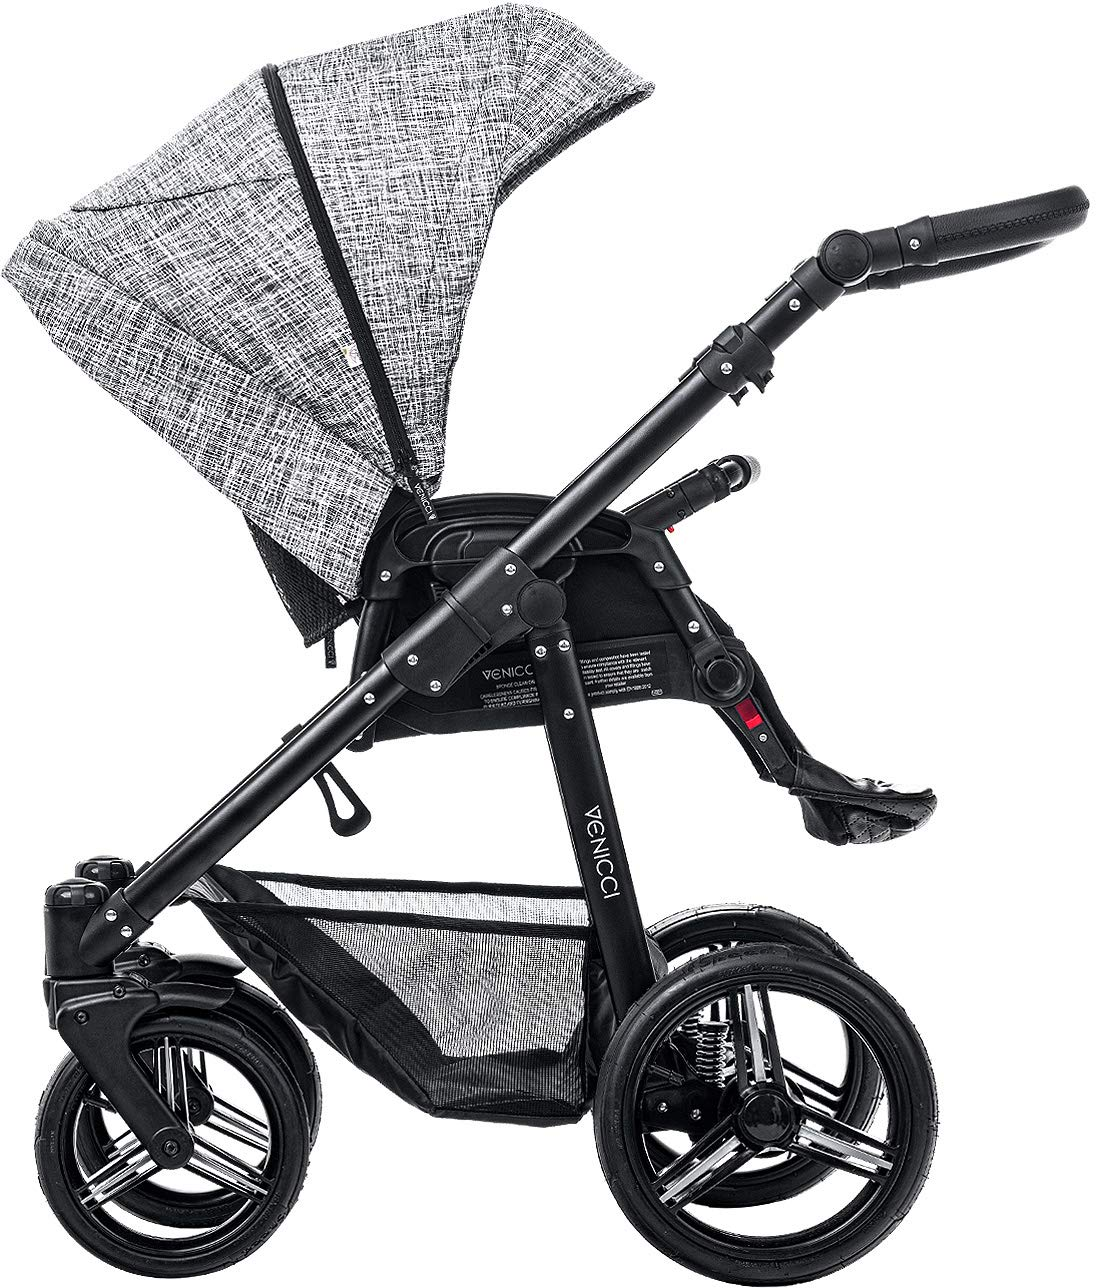 Venicci Shadow 2-in-1 - Fashion Black Travel System Venicci Also includes: Changing bag, Apron, Rain cover, Mosquito Net, Cup holder Carrycot: L 102cm W 61cm H 112 cm Age suitability: From birth to 6 months Seat unit: L 95cm W 61cm H 112cm Age suitability: From 7 to 36 months 3